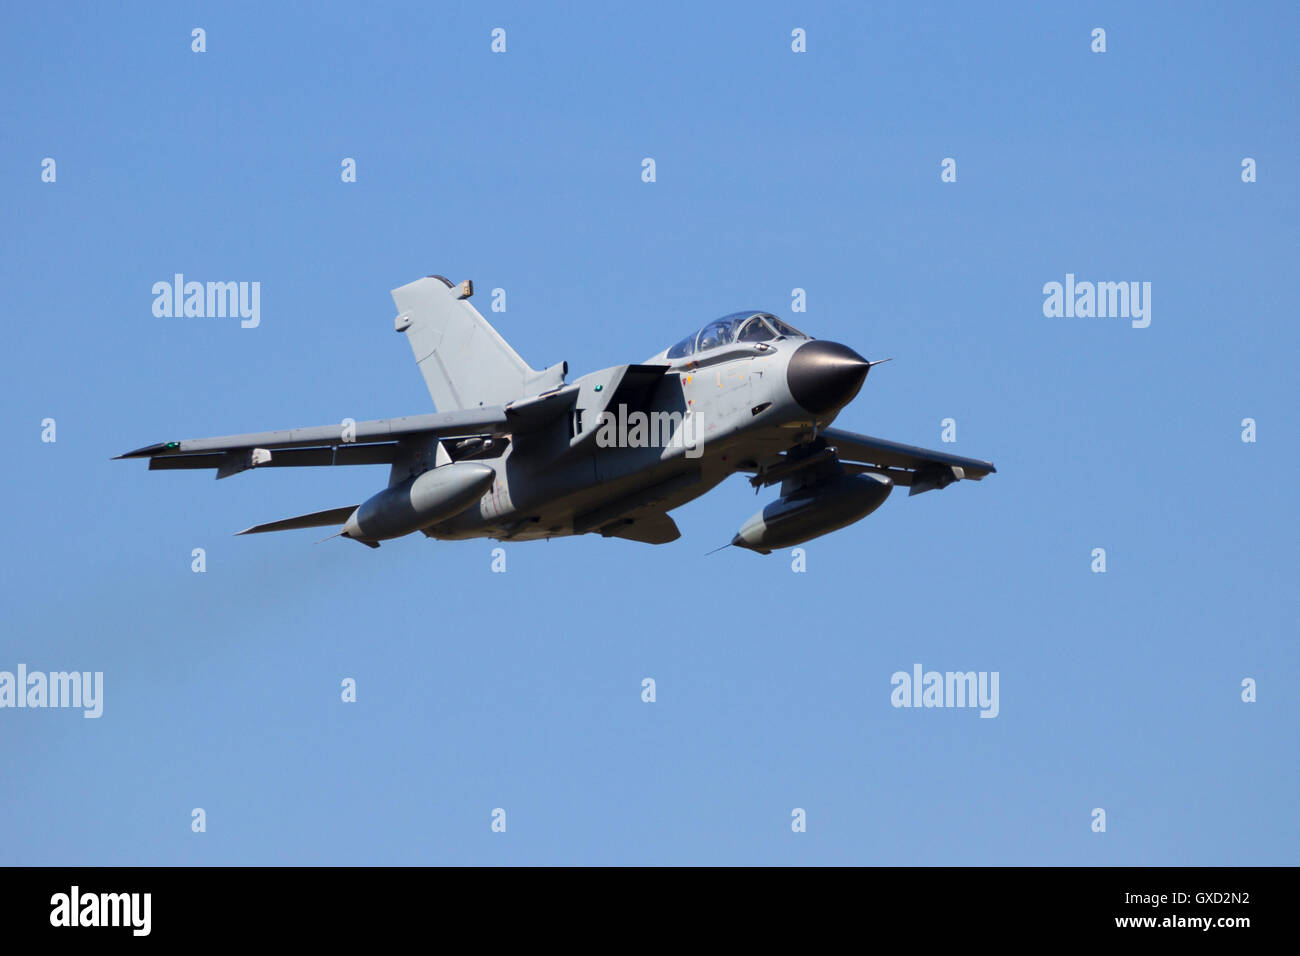 Fighter jet low and fast flyby - Stock Image